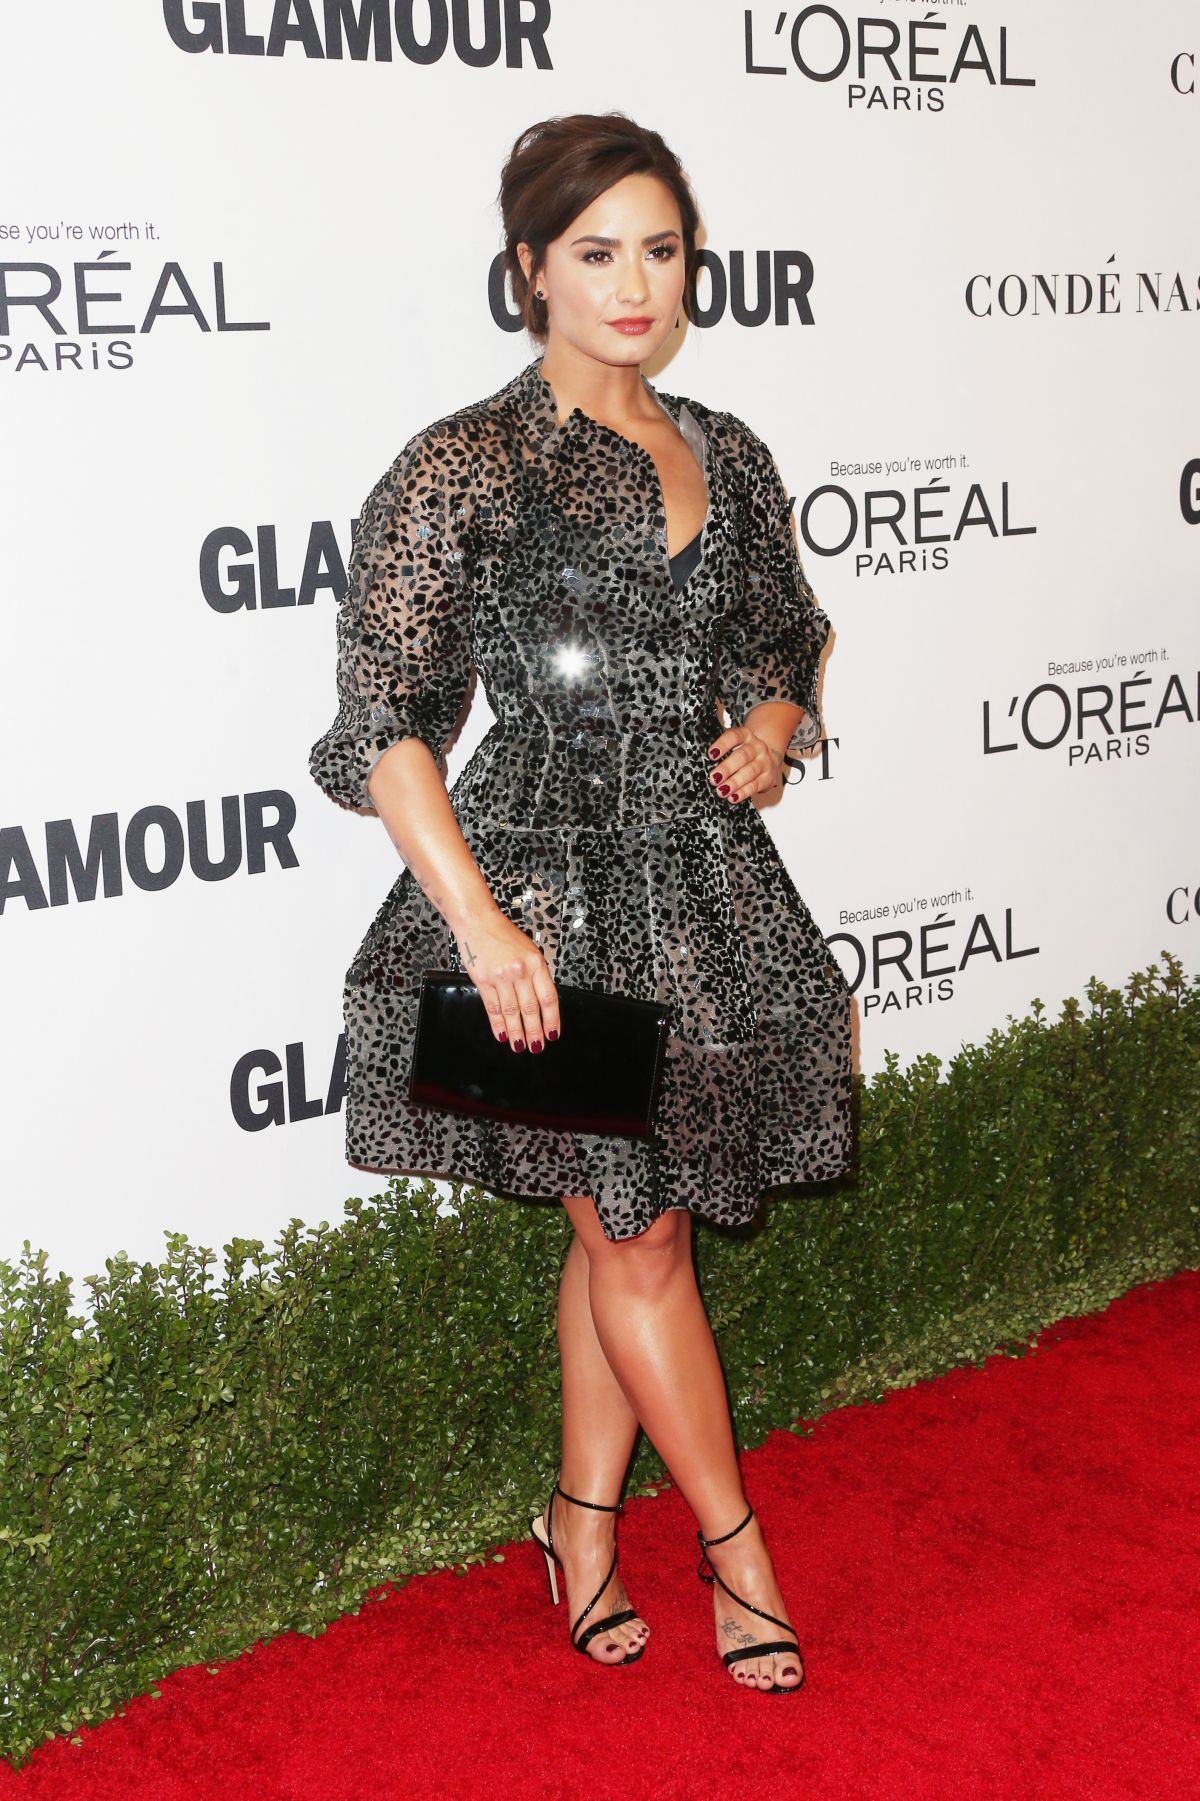 DEMI LOVATO At Glamour Women Of The Year 2016 In Los